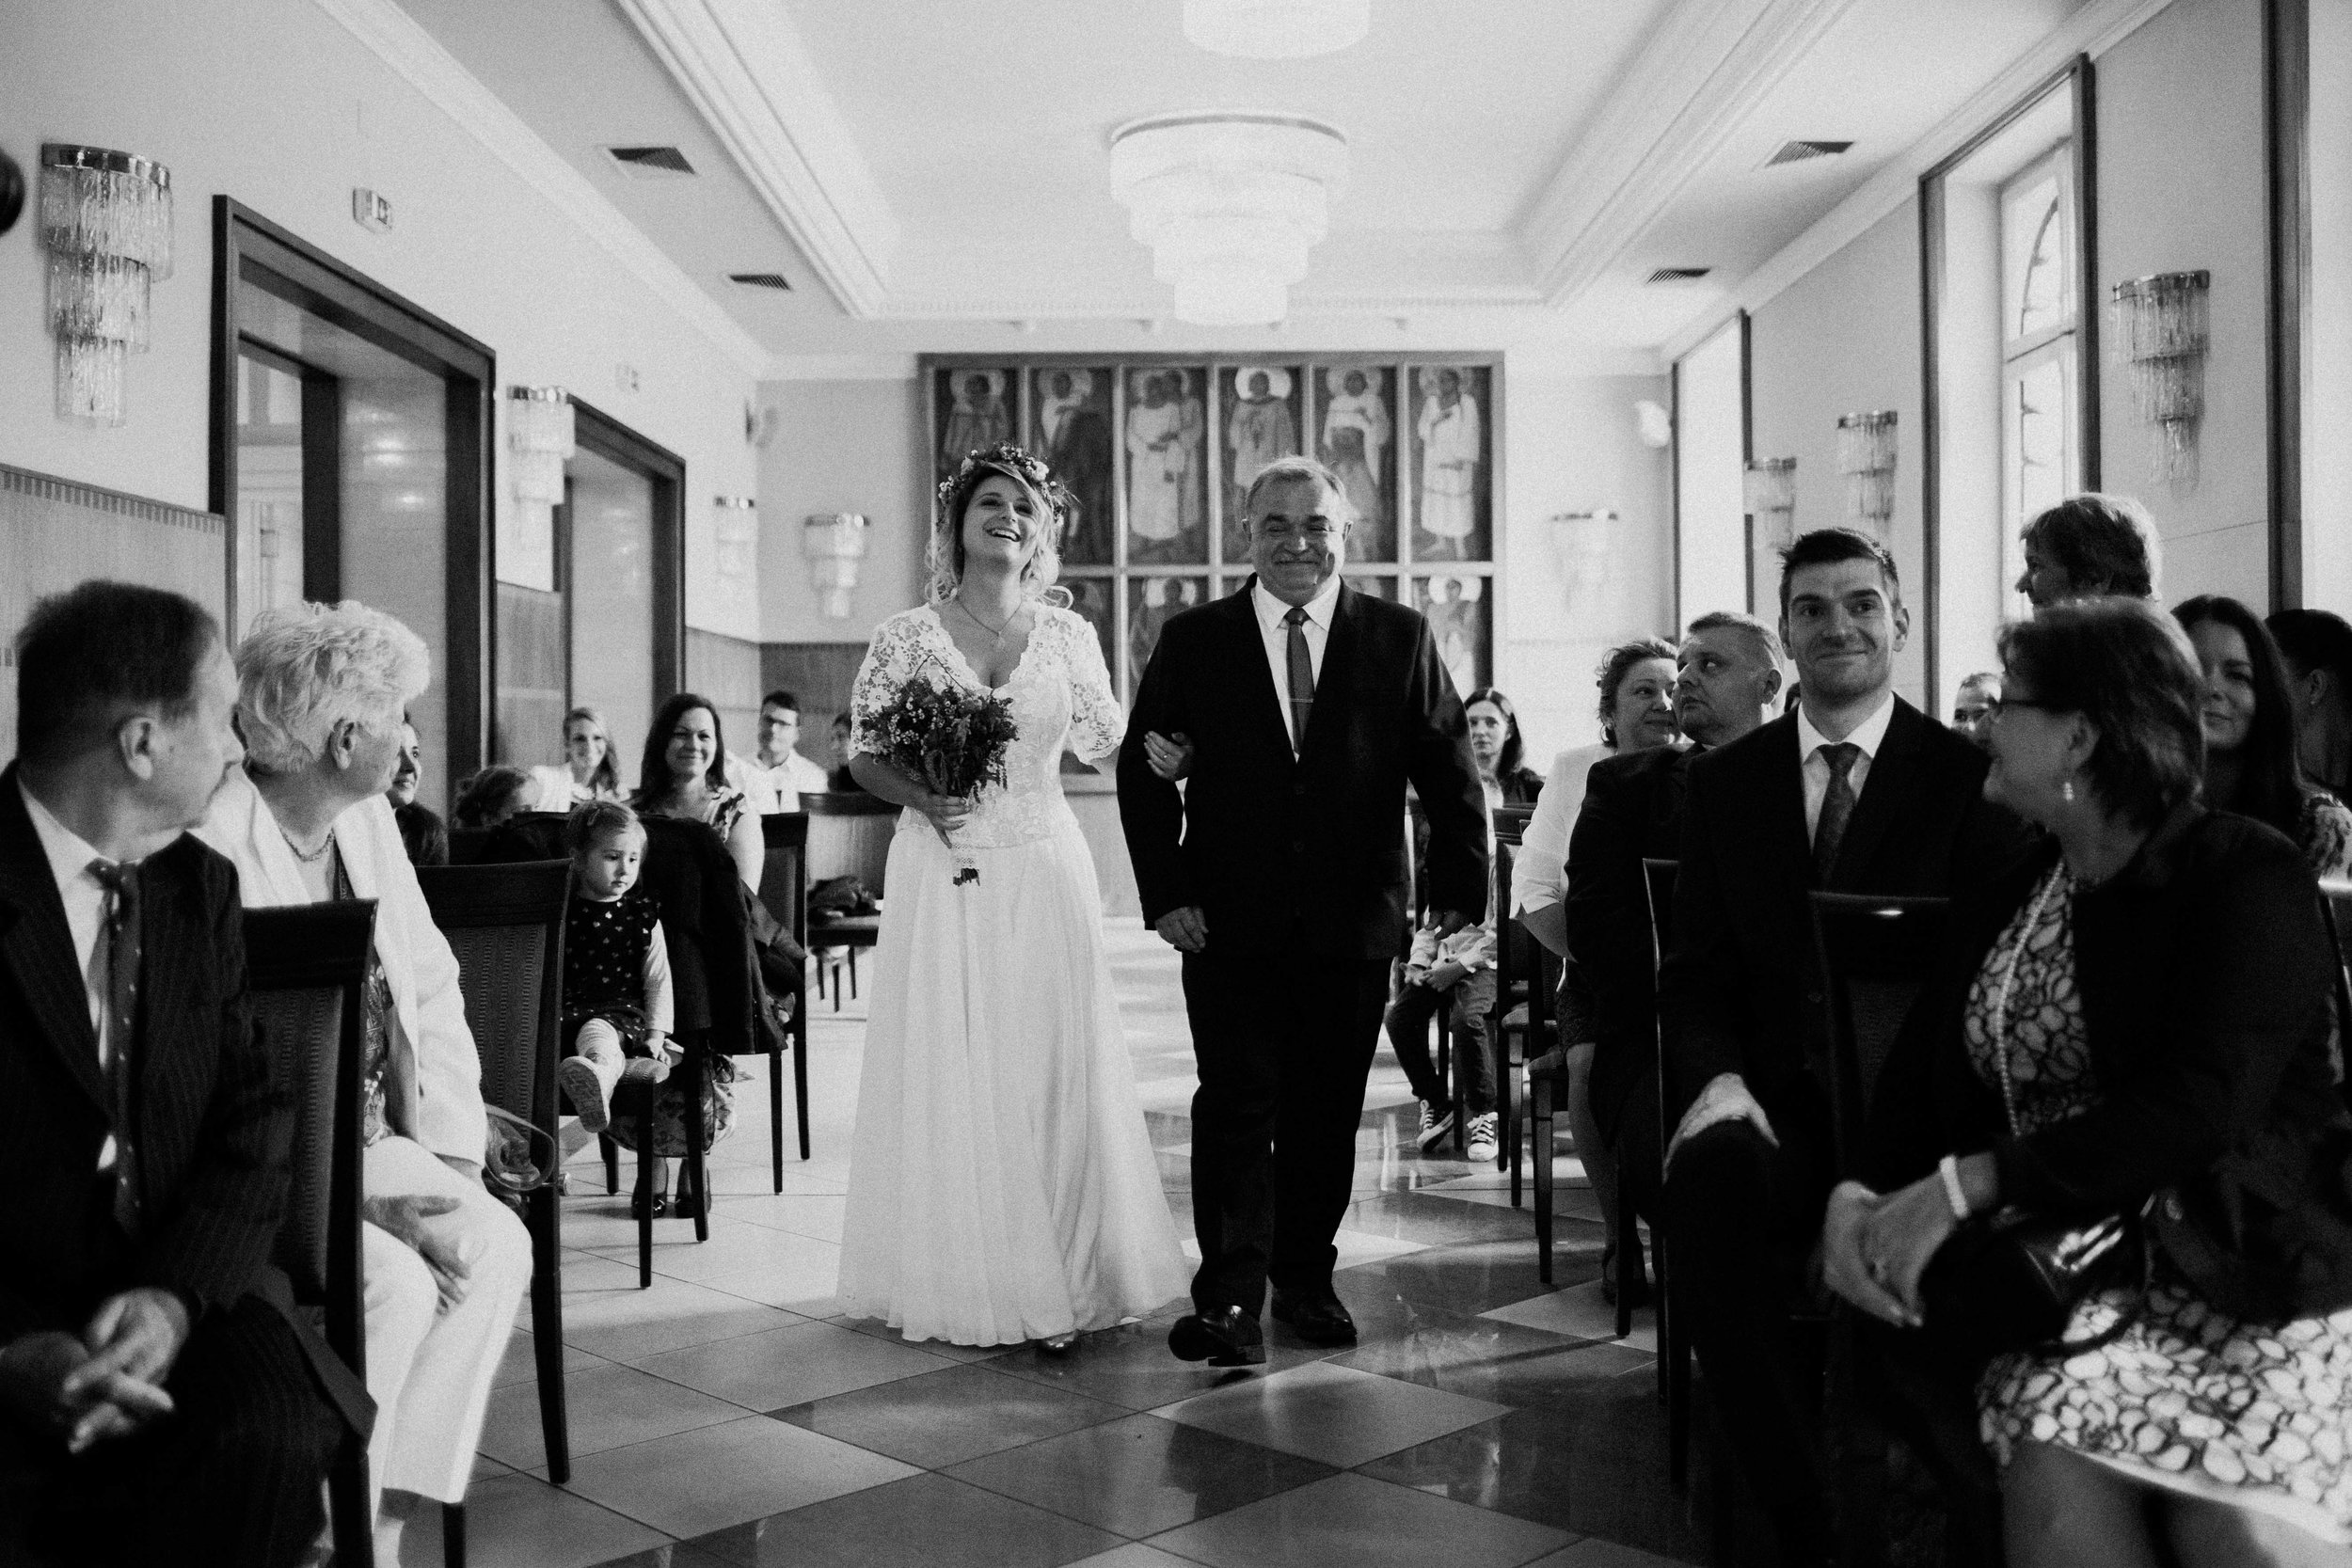 20170506_Kriszta+David_wedding_w_242__MG_5542_2.jpg